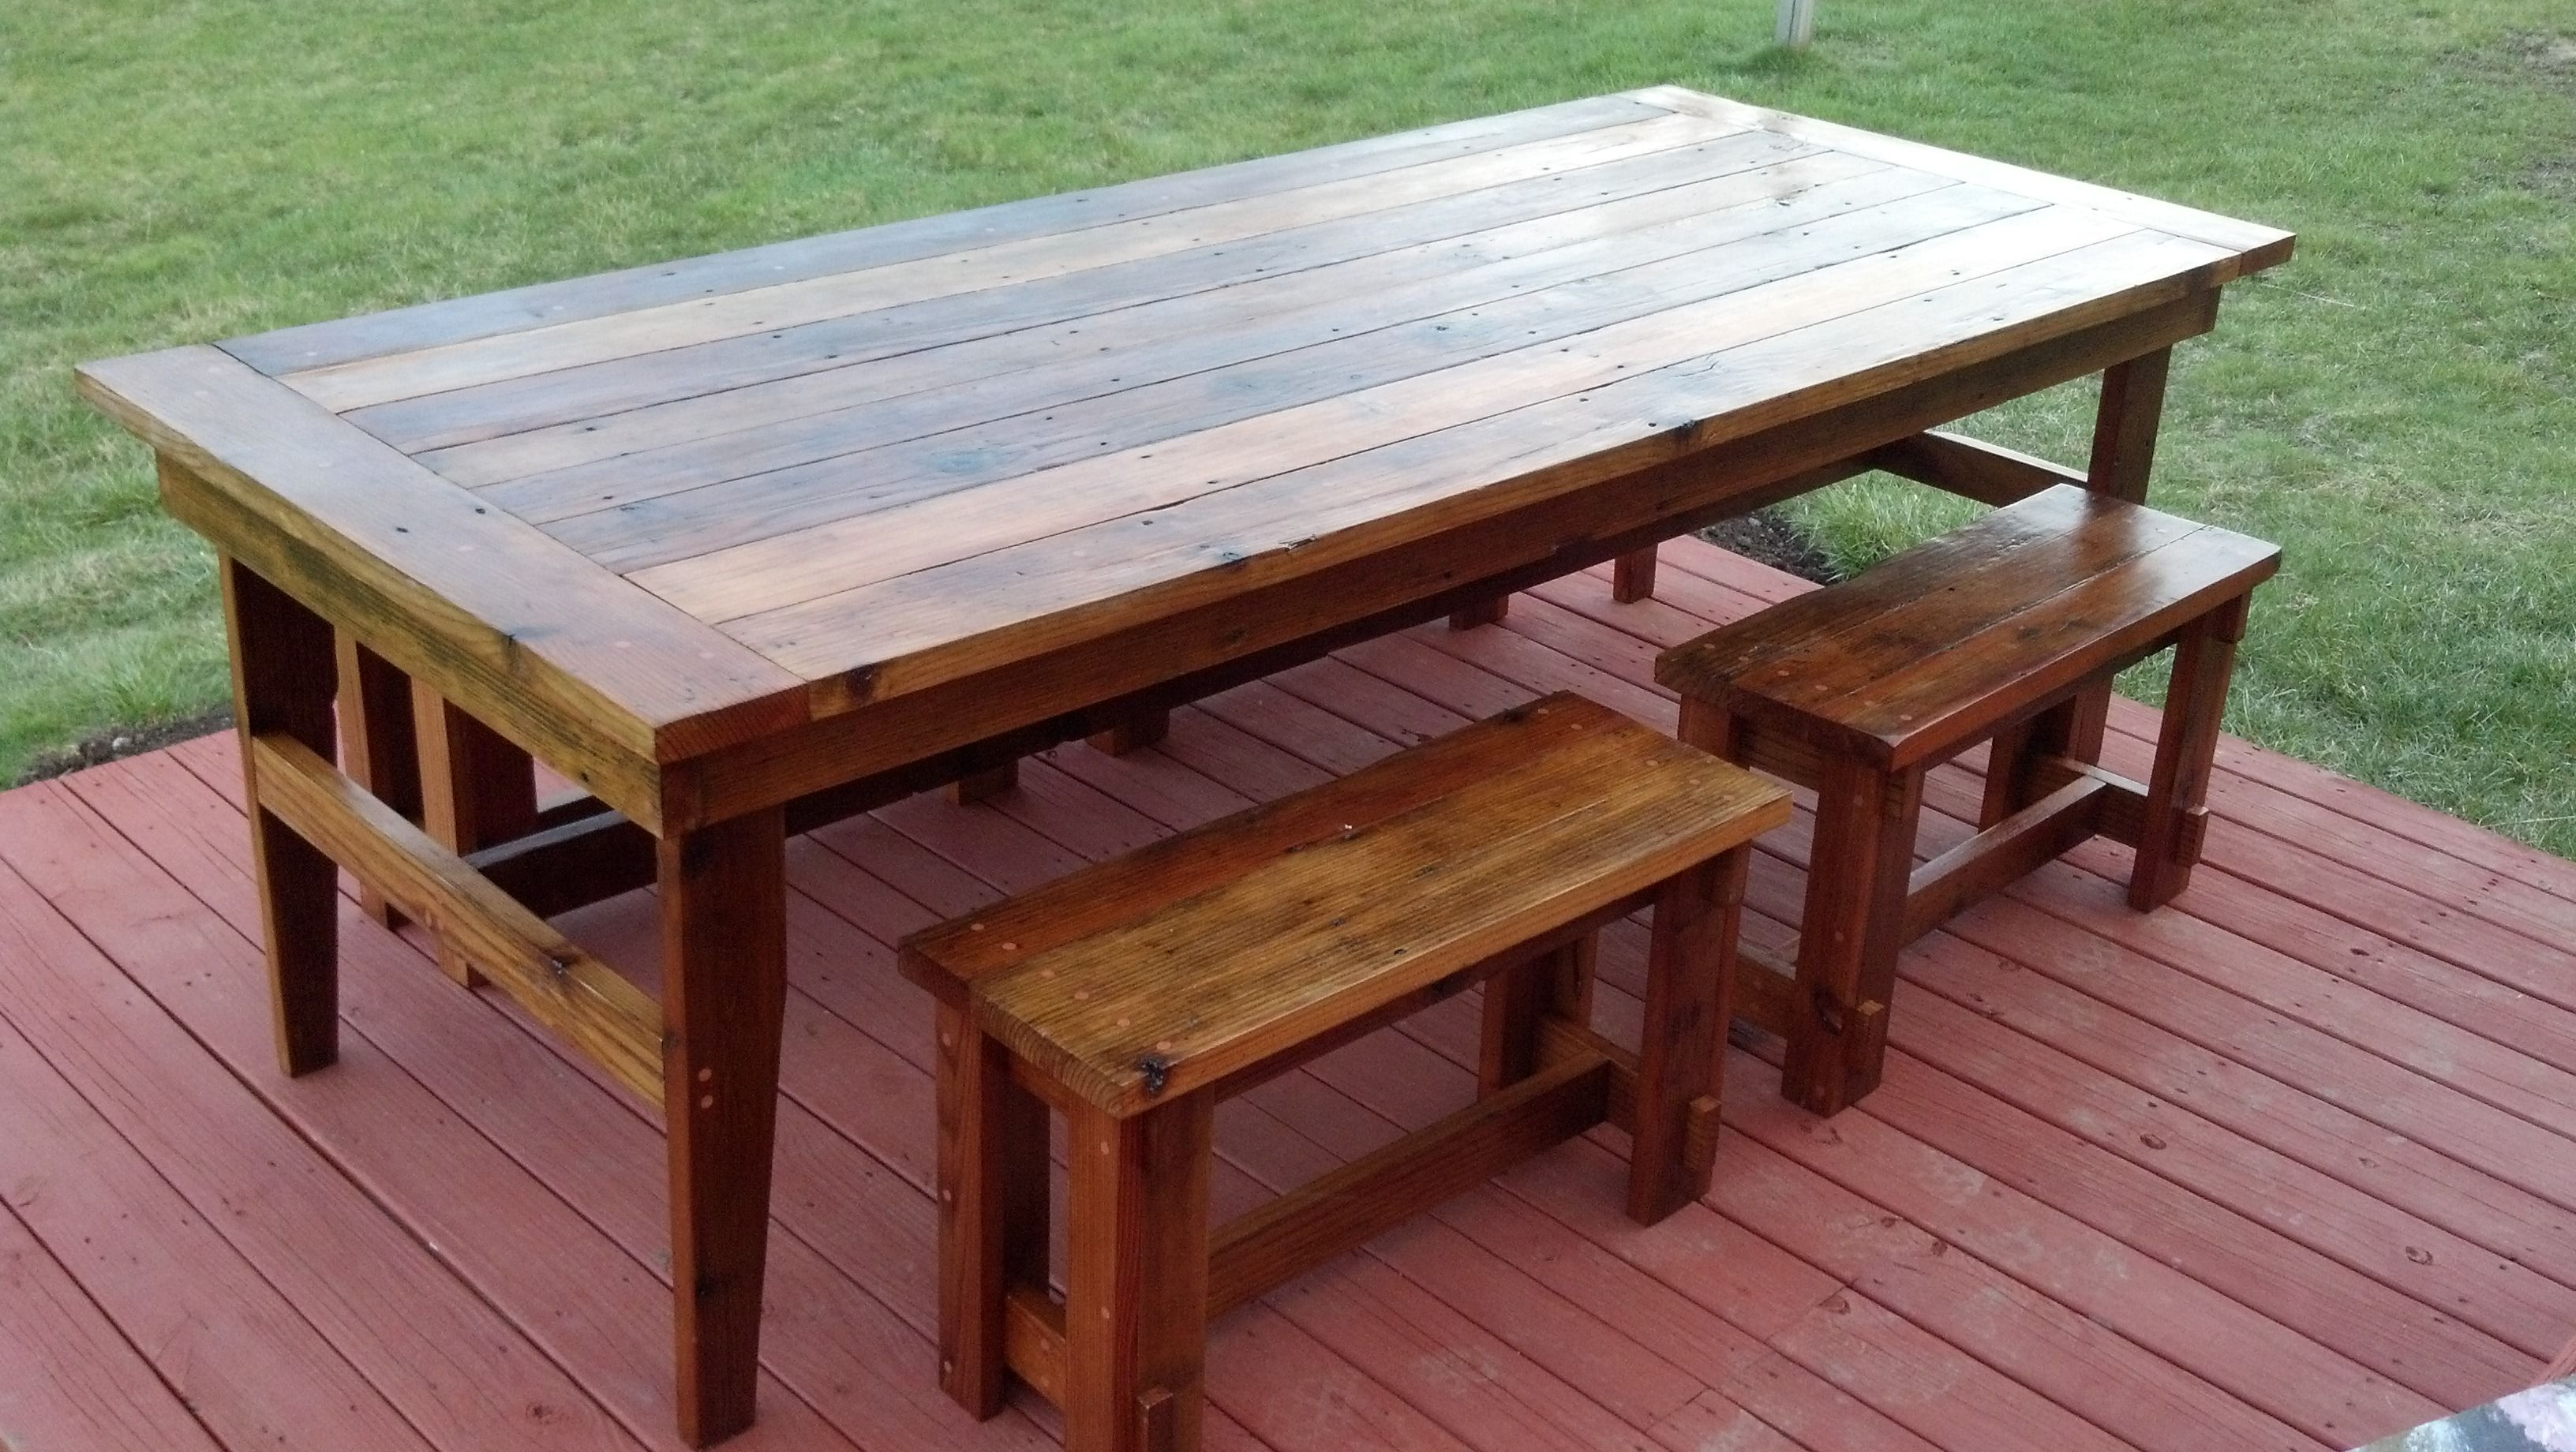 Rustic Farm Table Amp Benches Plans Around The House